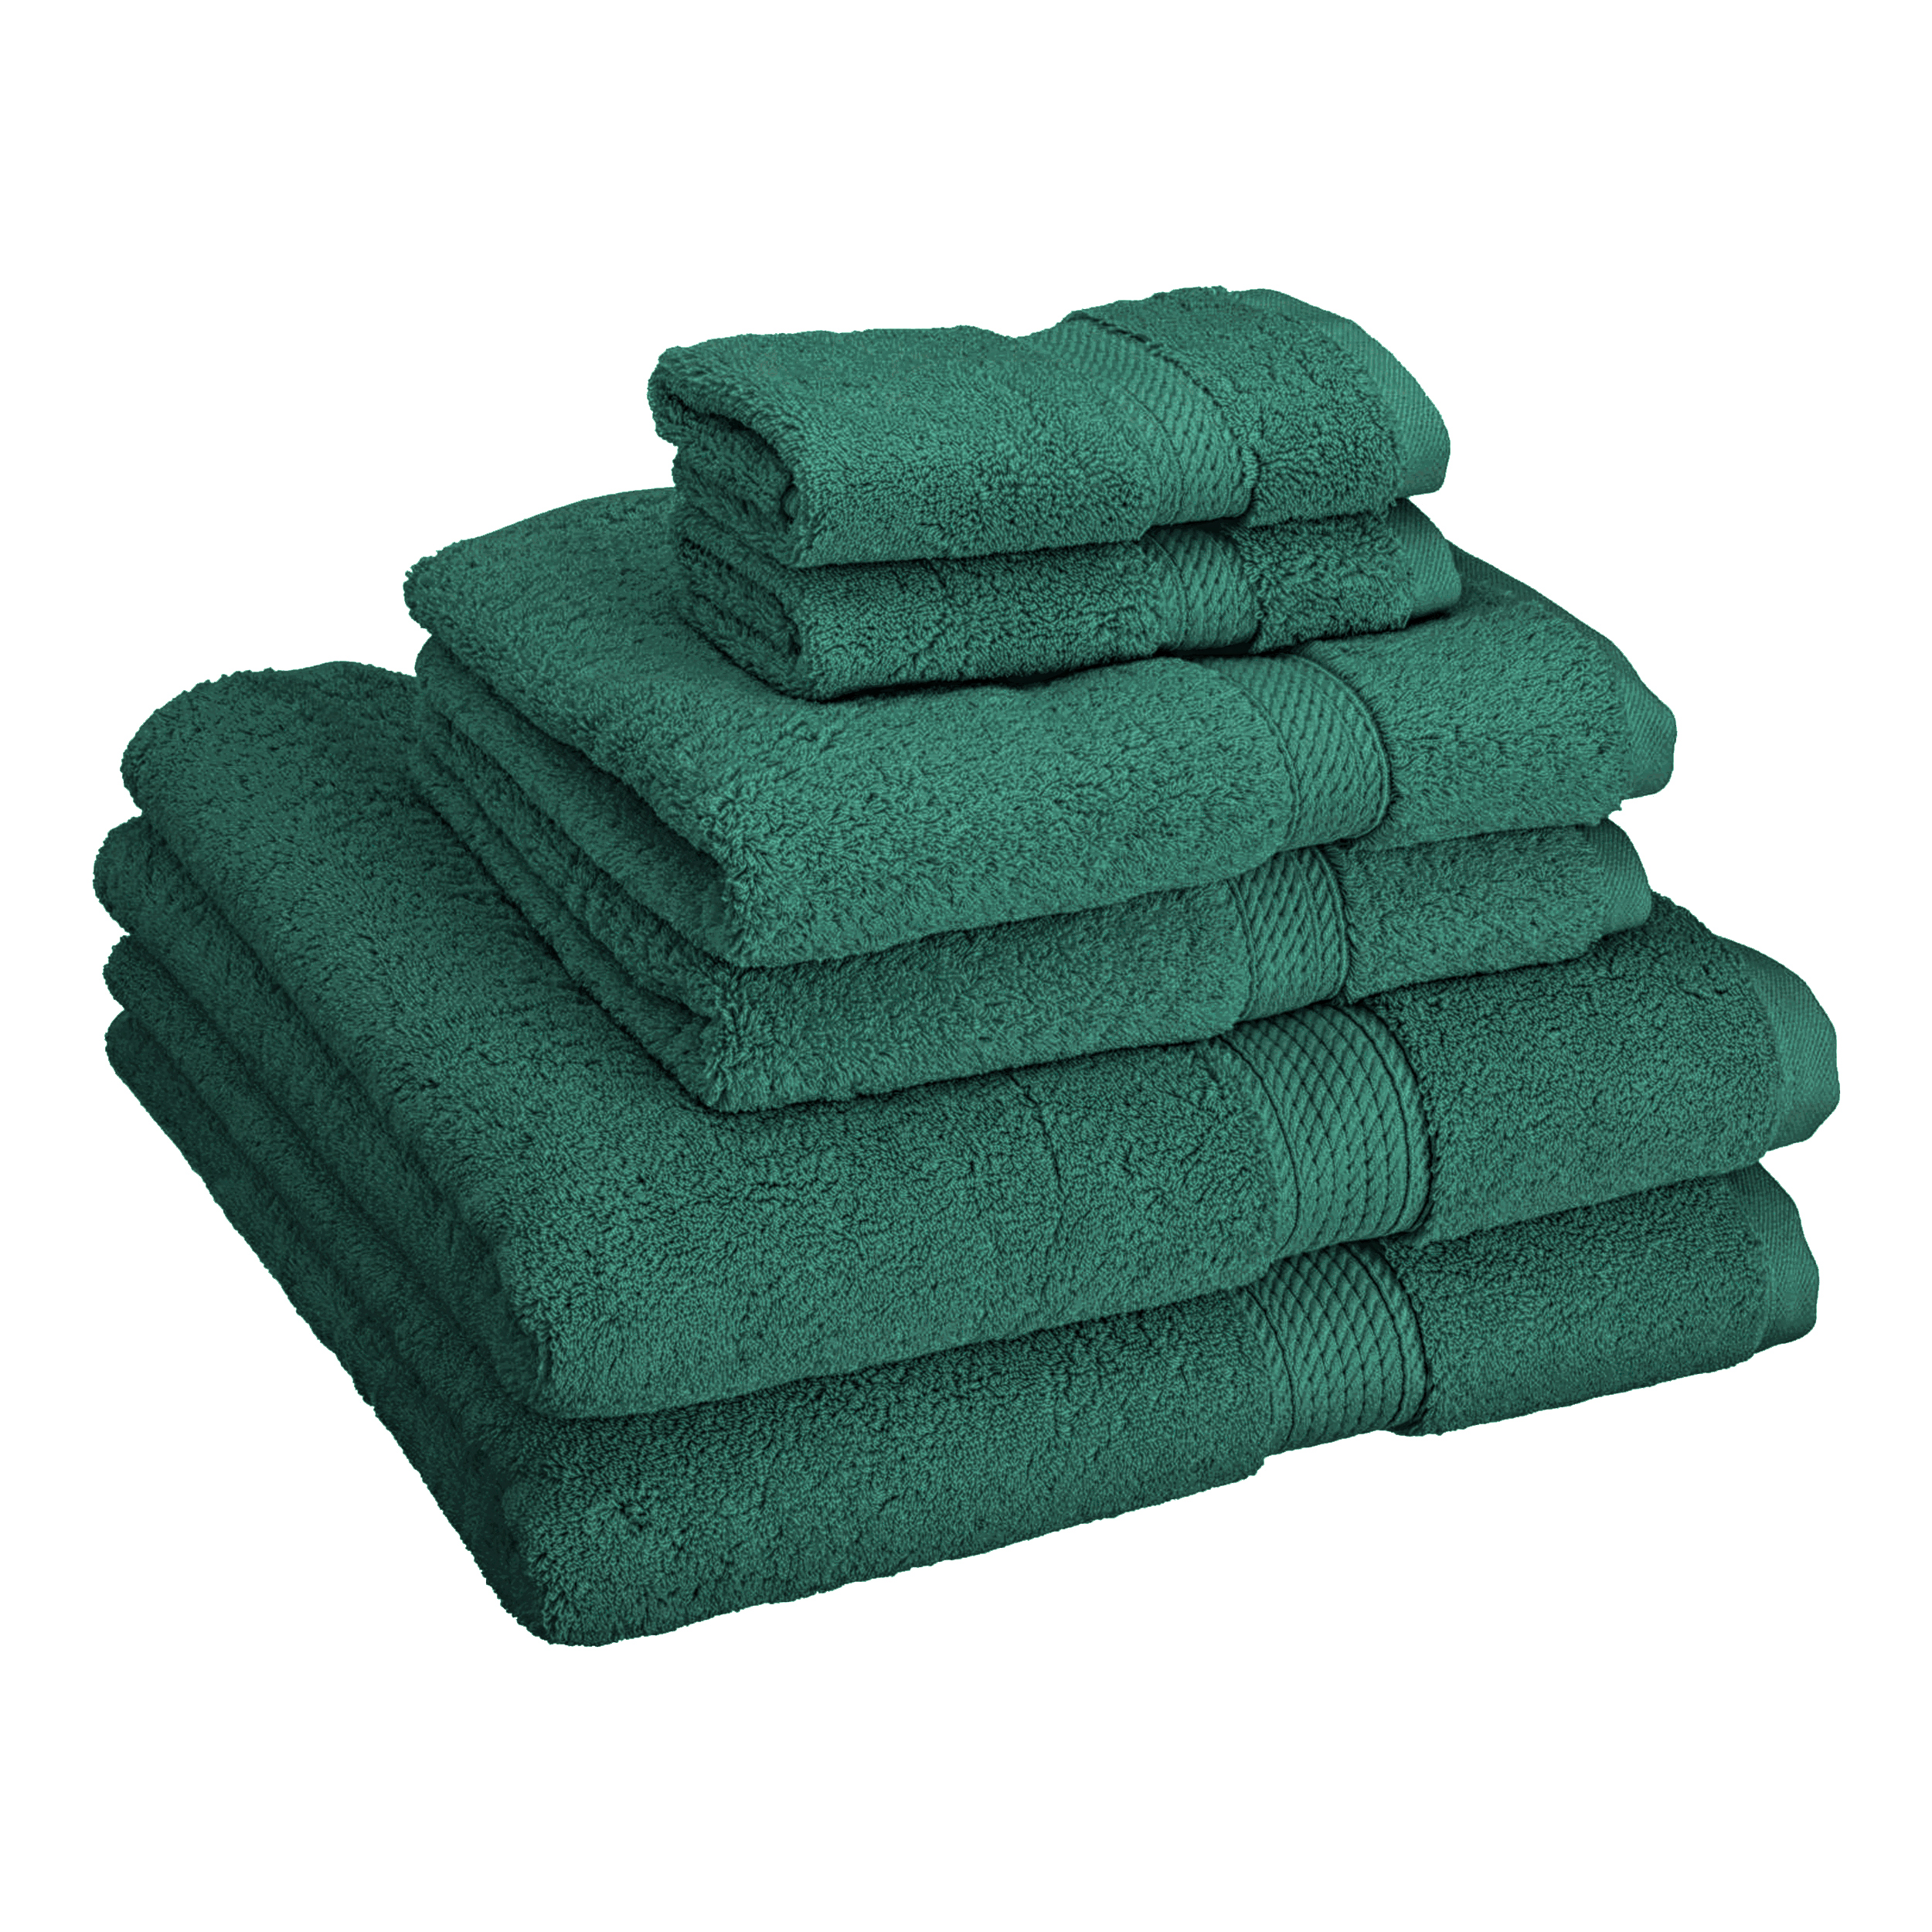 Superior 900GSM Egyptian Quality Cotton 6-Piece Towel Set